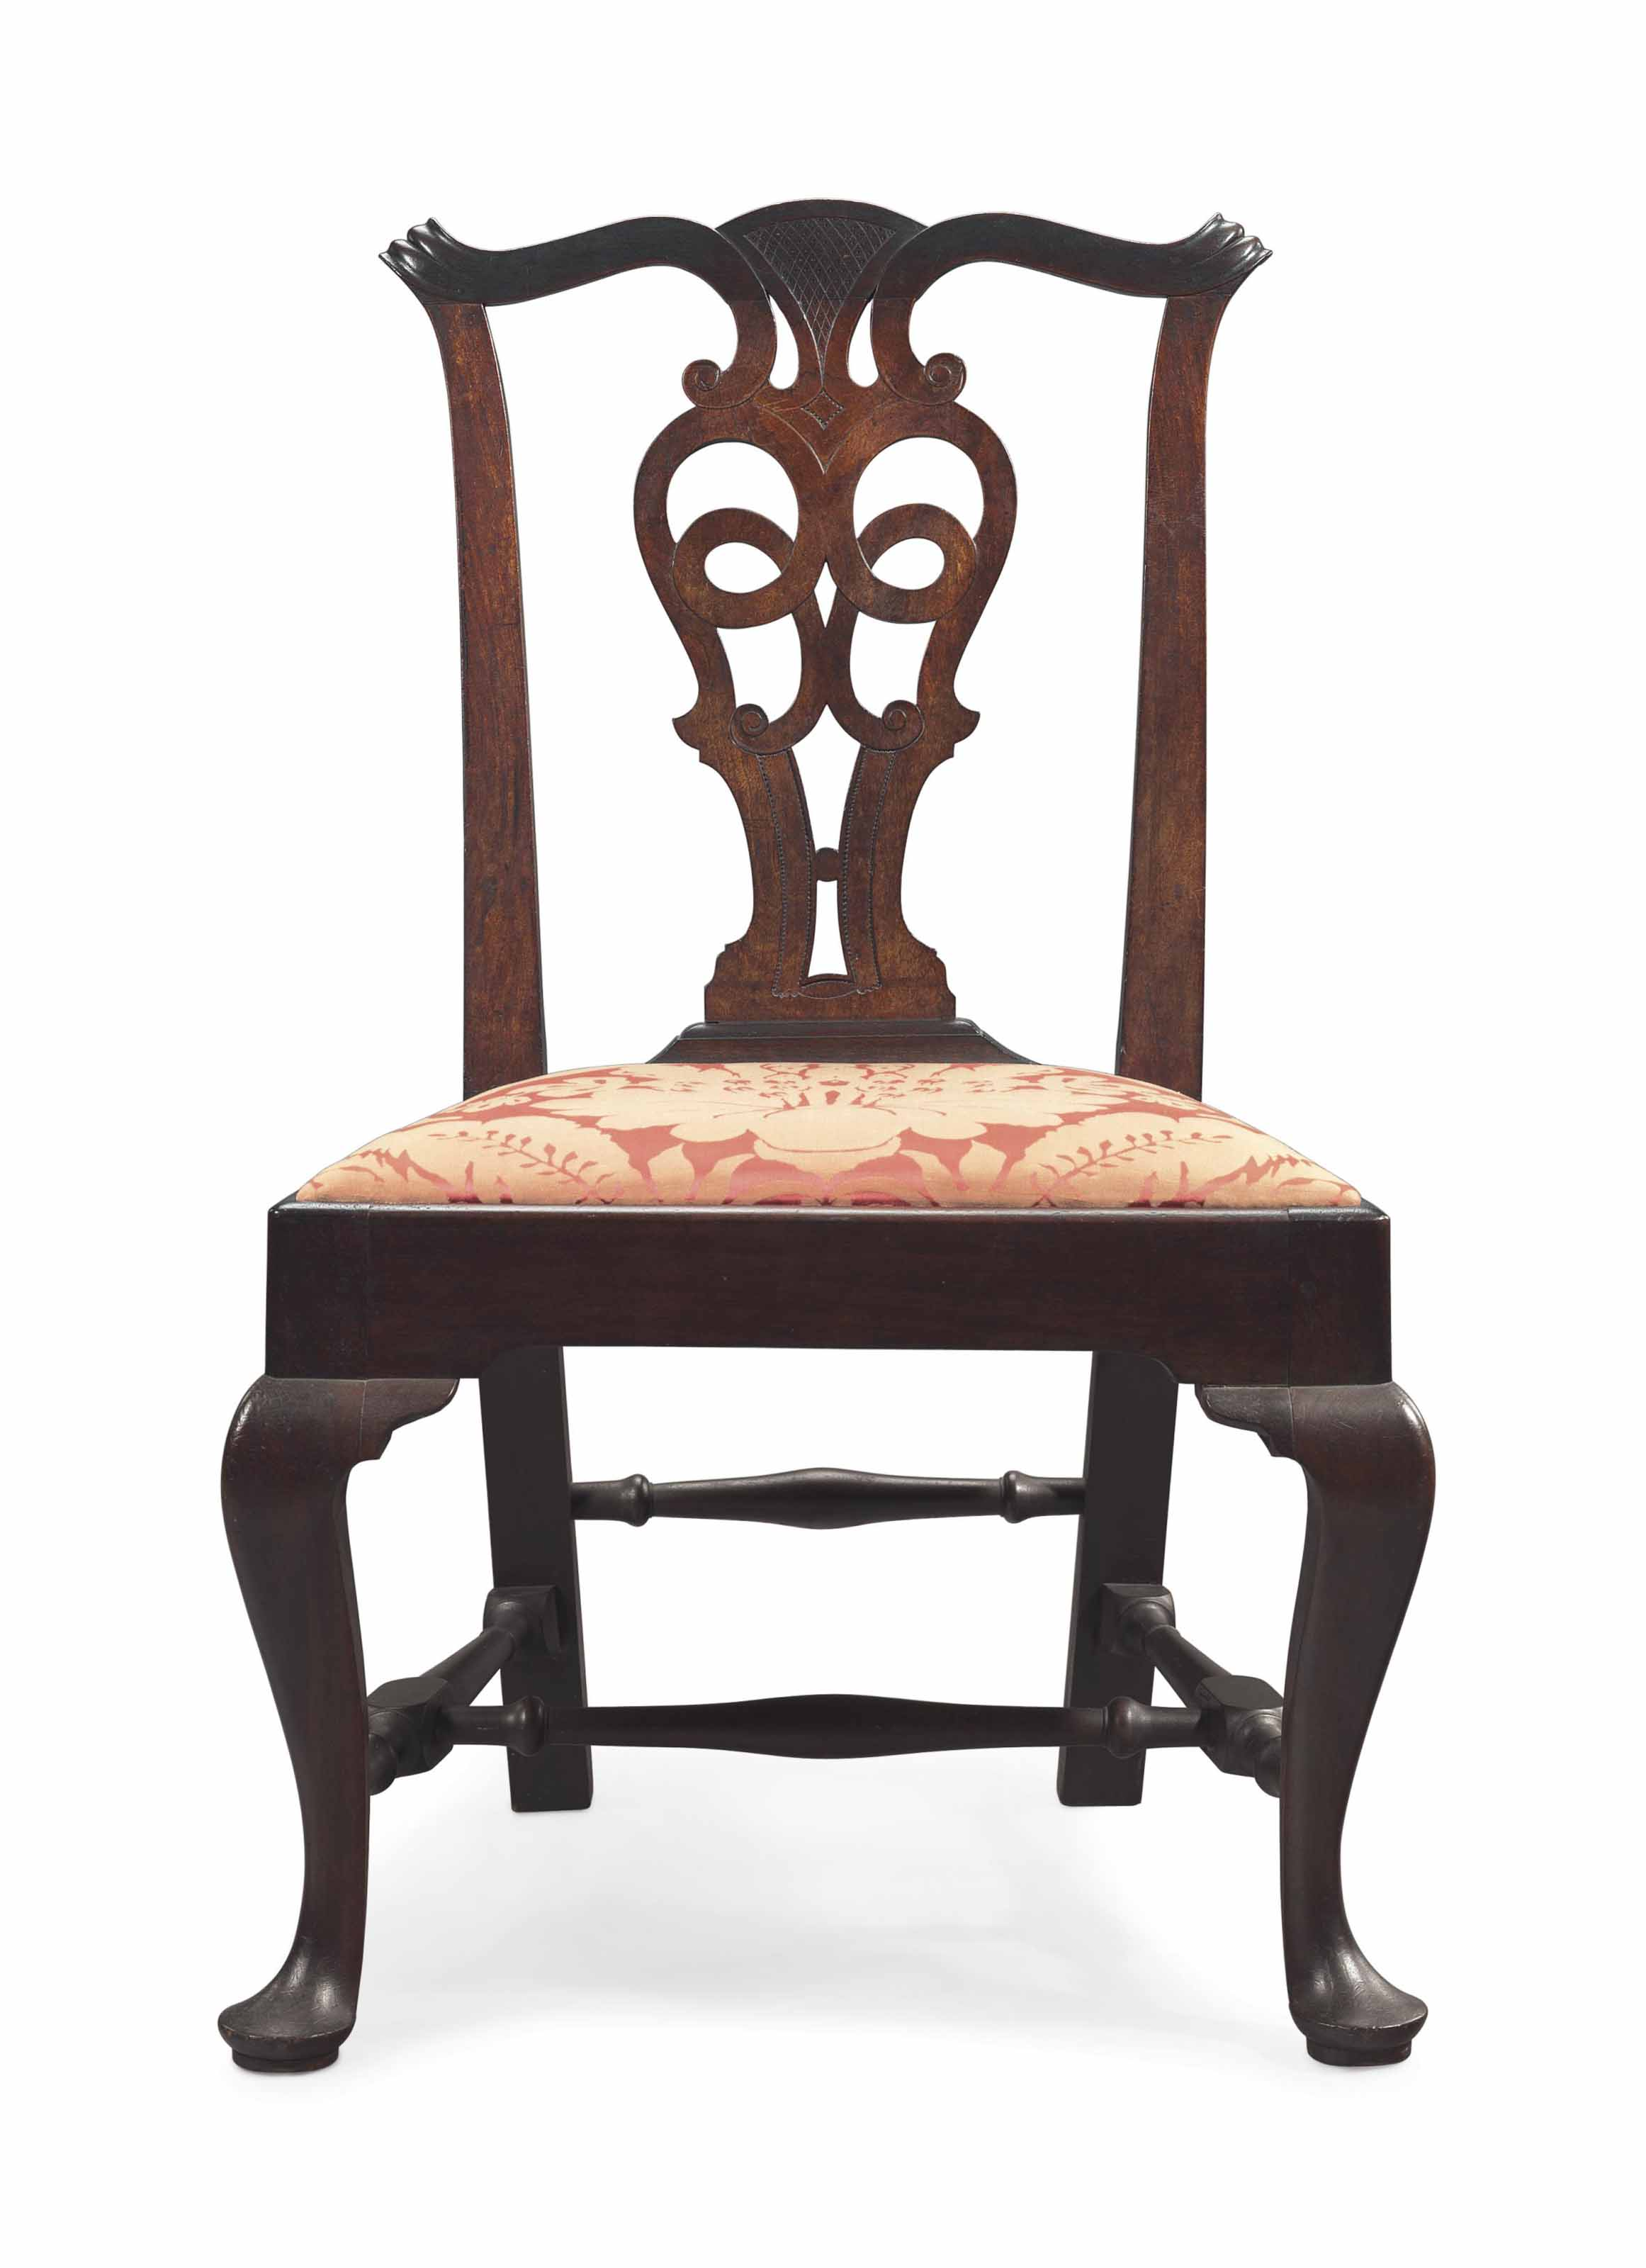 A CHIPPENDALE CARVED MAHOGANY SIDE CHAIR